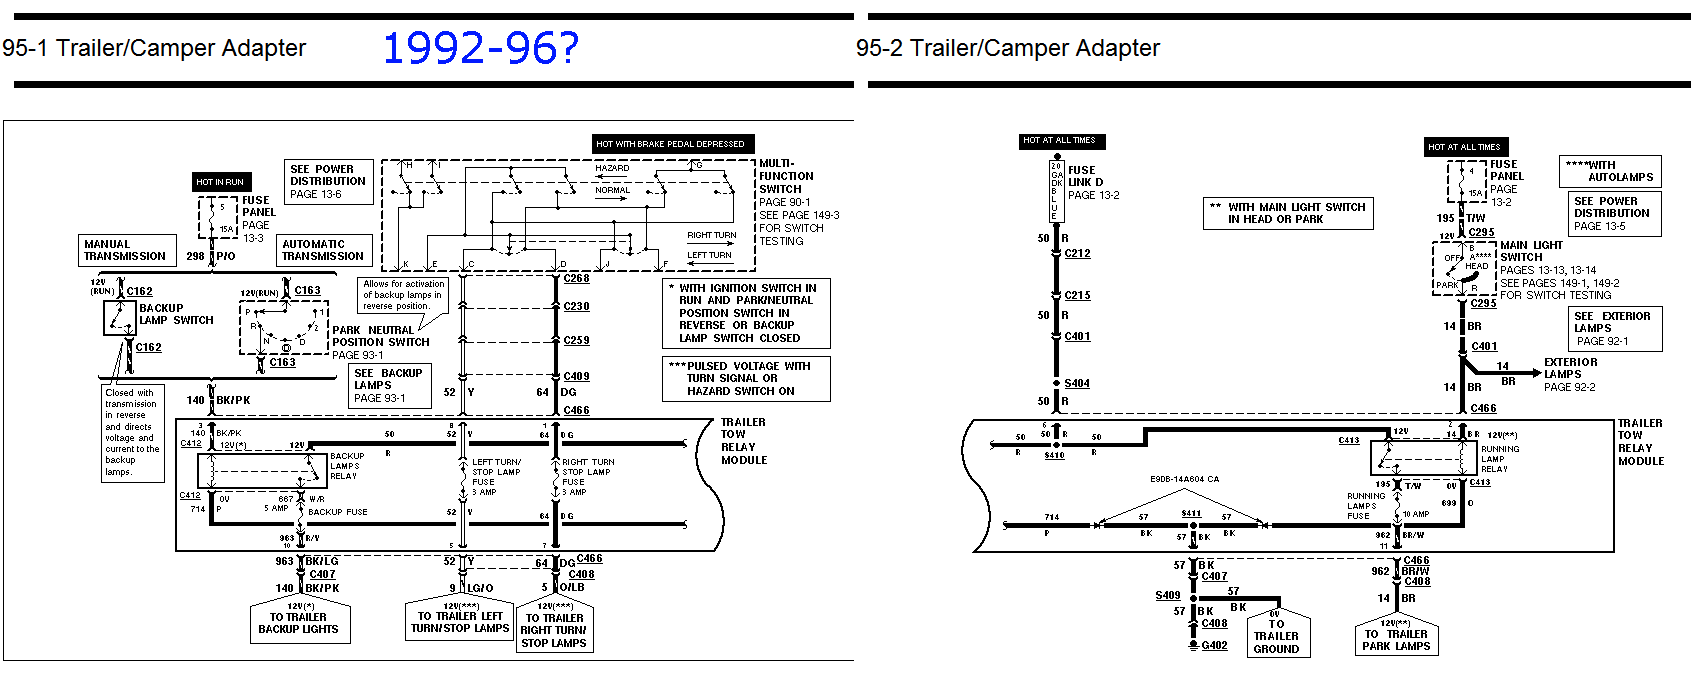 ford l8000 lighting diagram hg 4815  86 ford f250 wiring diagram tow package wiring diagram  ford f250 wiring diagram tow package